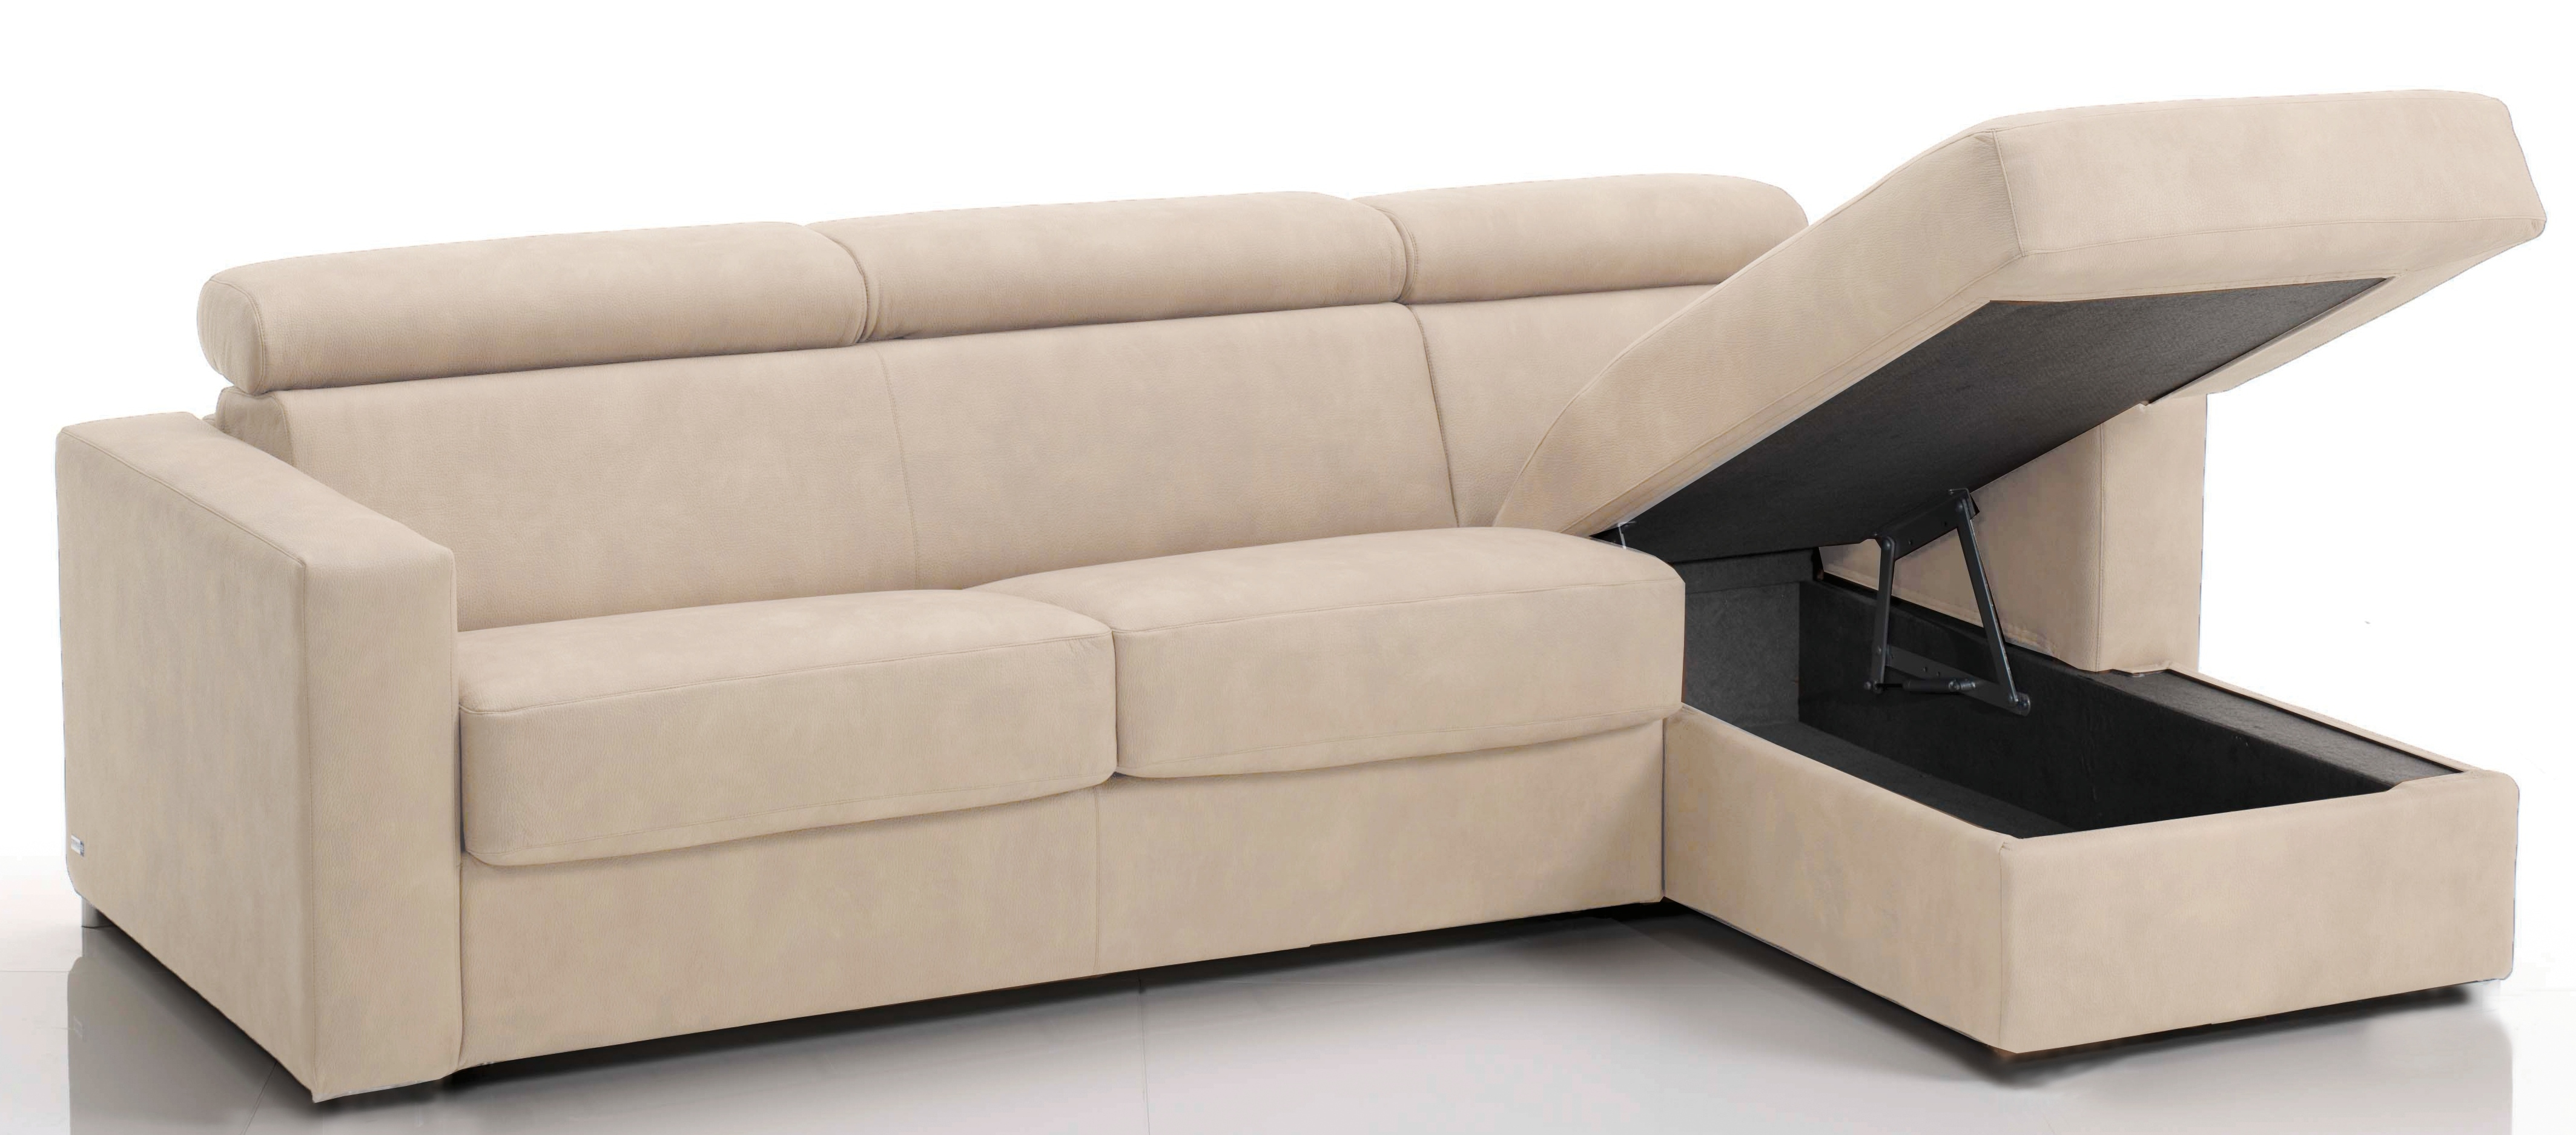 Canap convertible beige royal sofa id e de canap et for Canape lit but fr